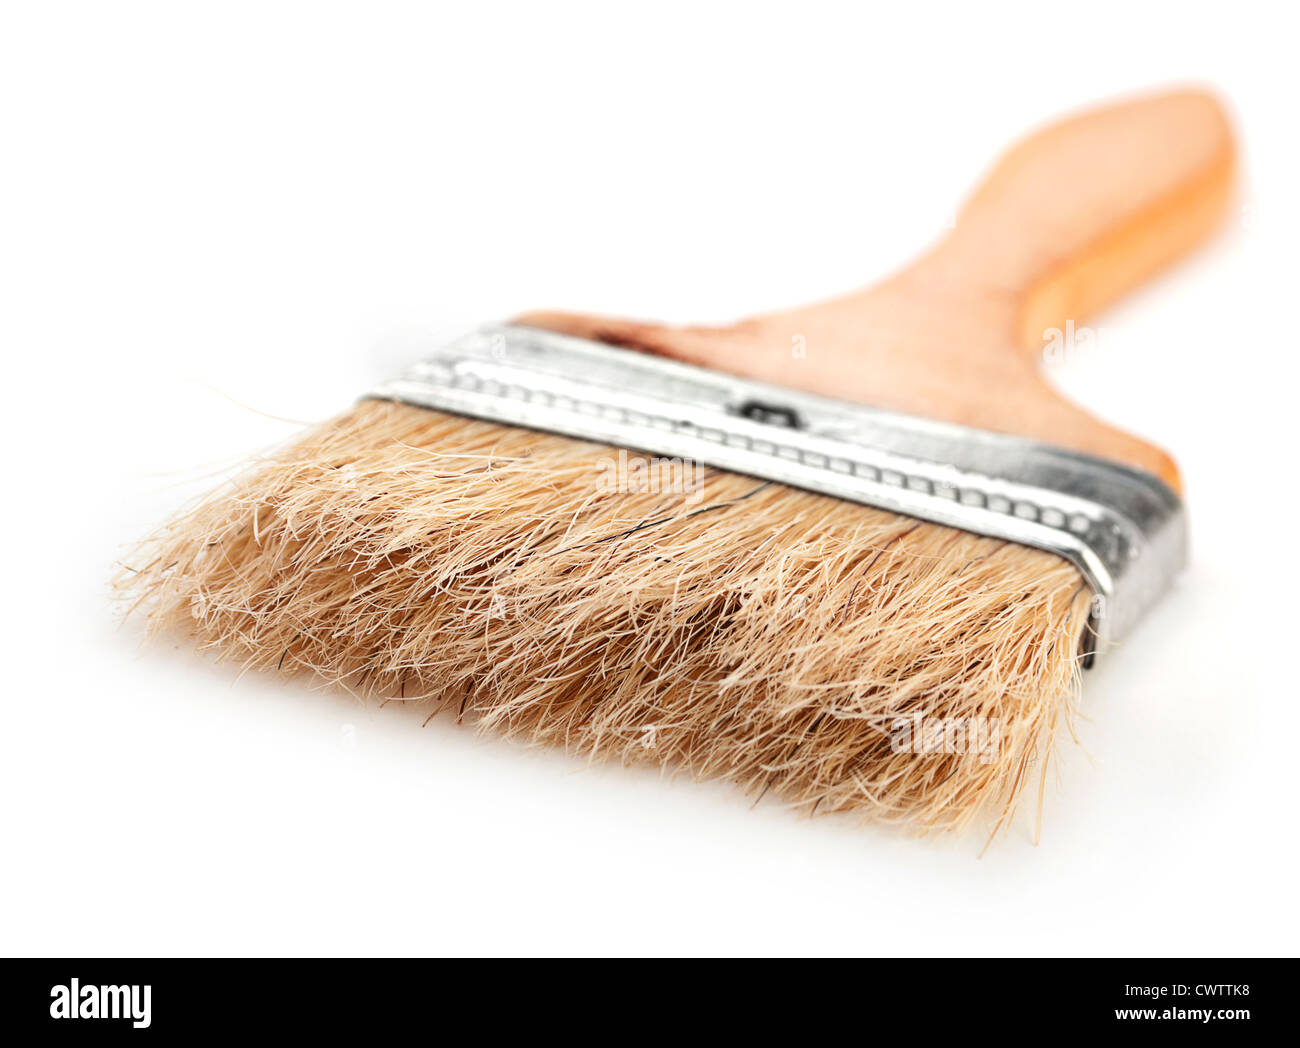 Tool brush with wooden handle - Stock Image